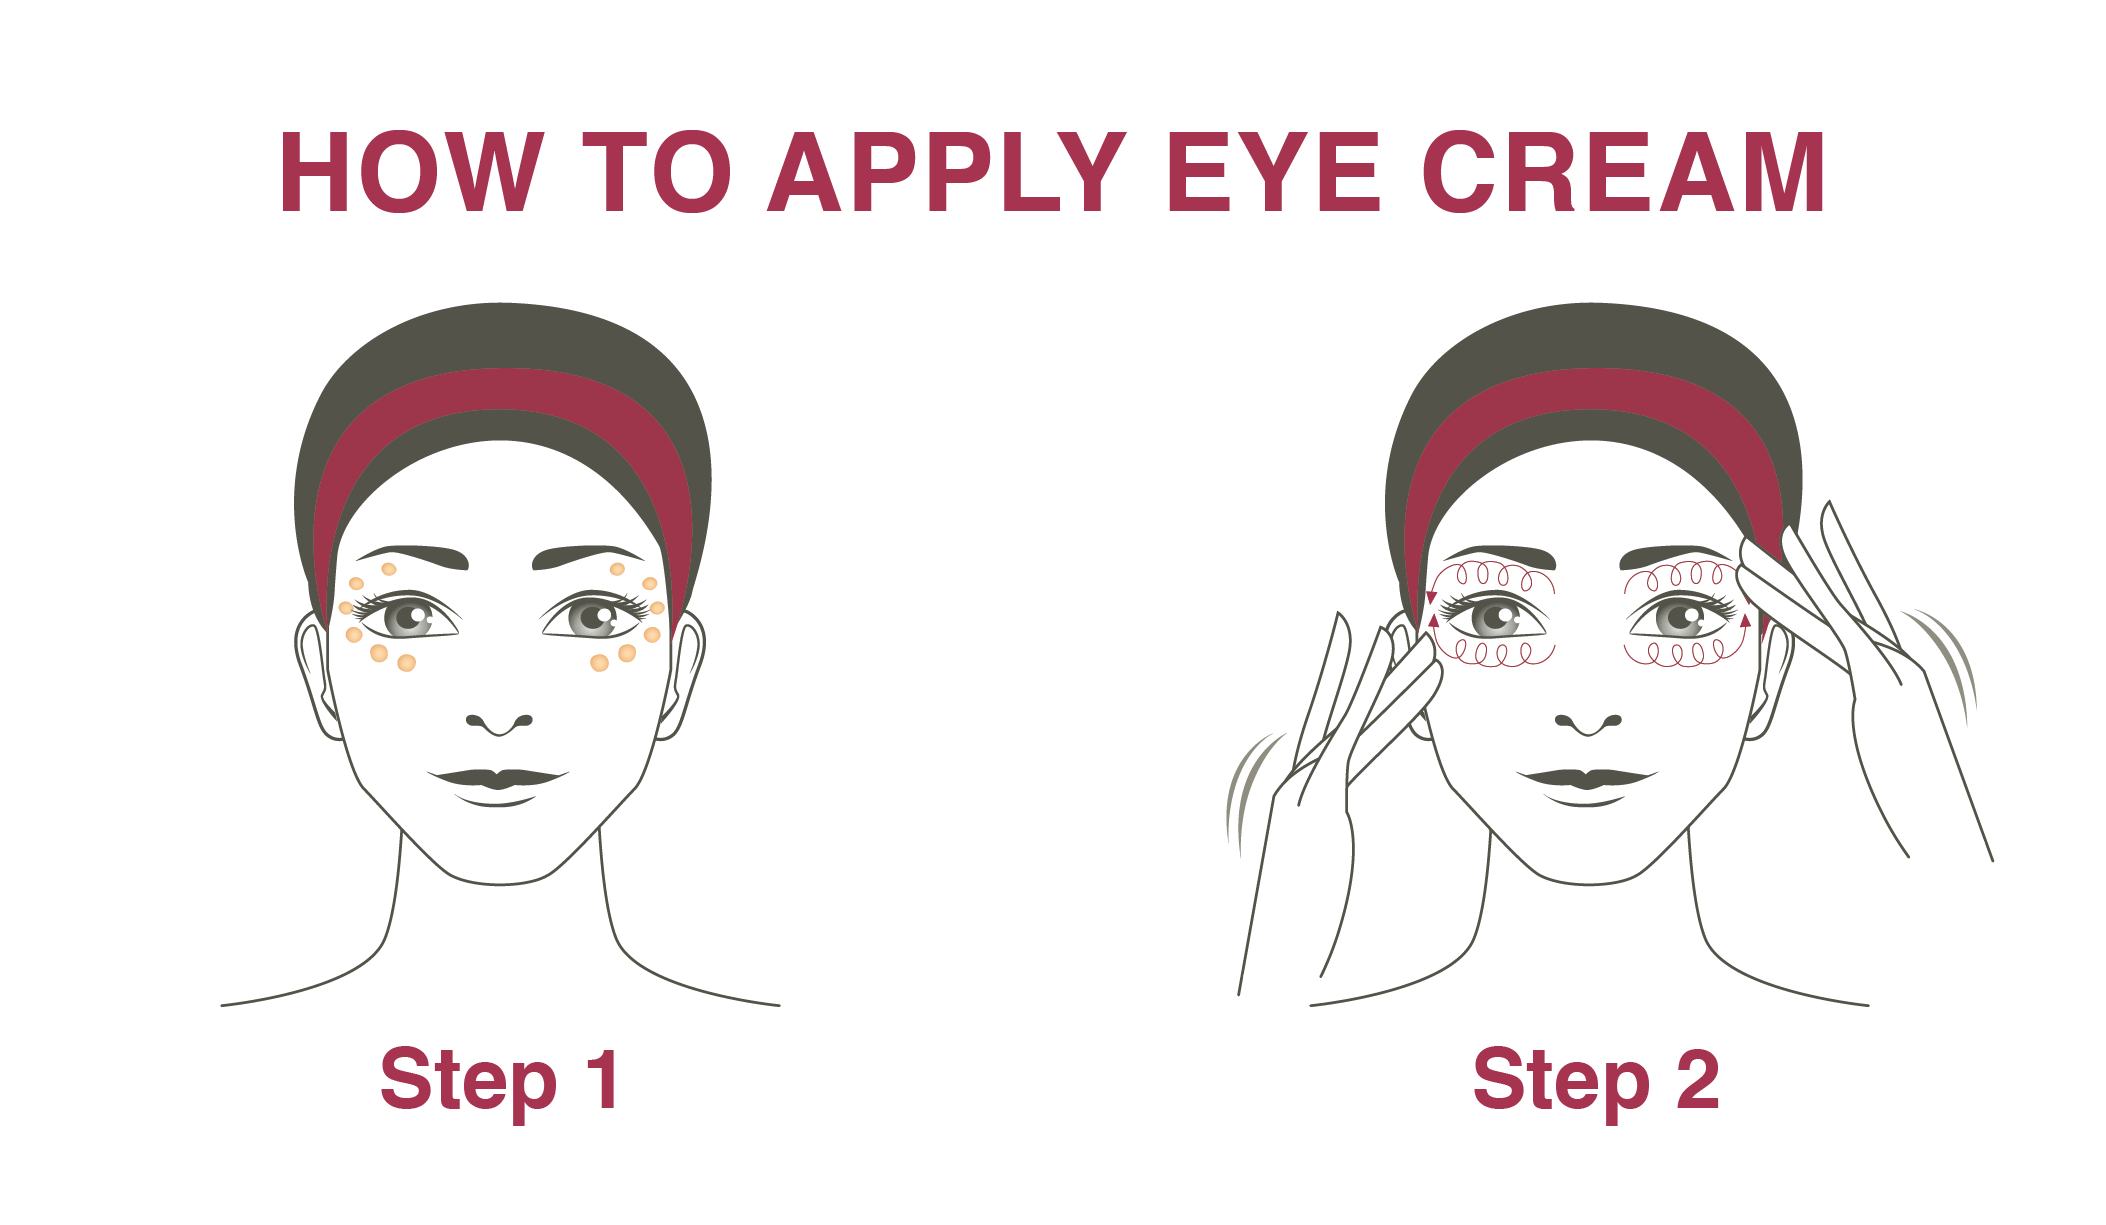 Illustration on how to apply eye cream